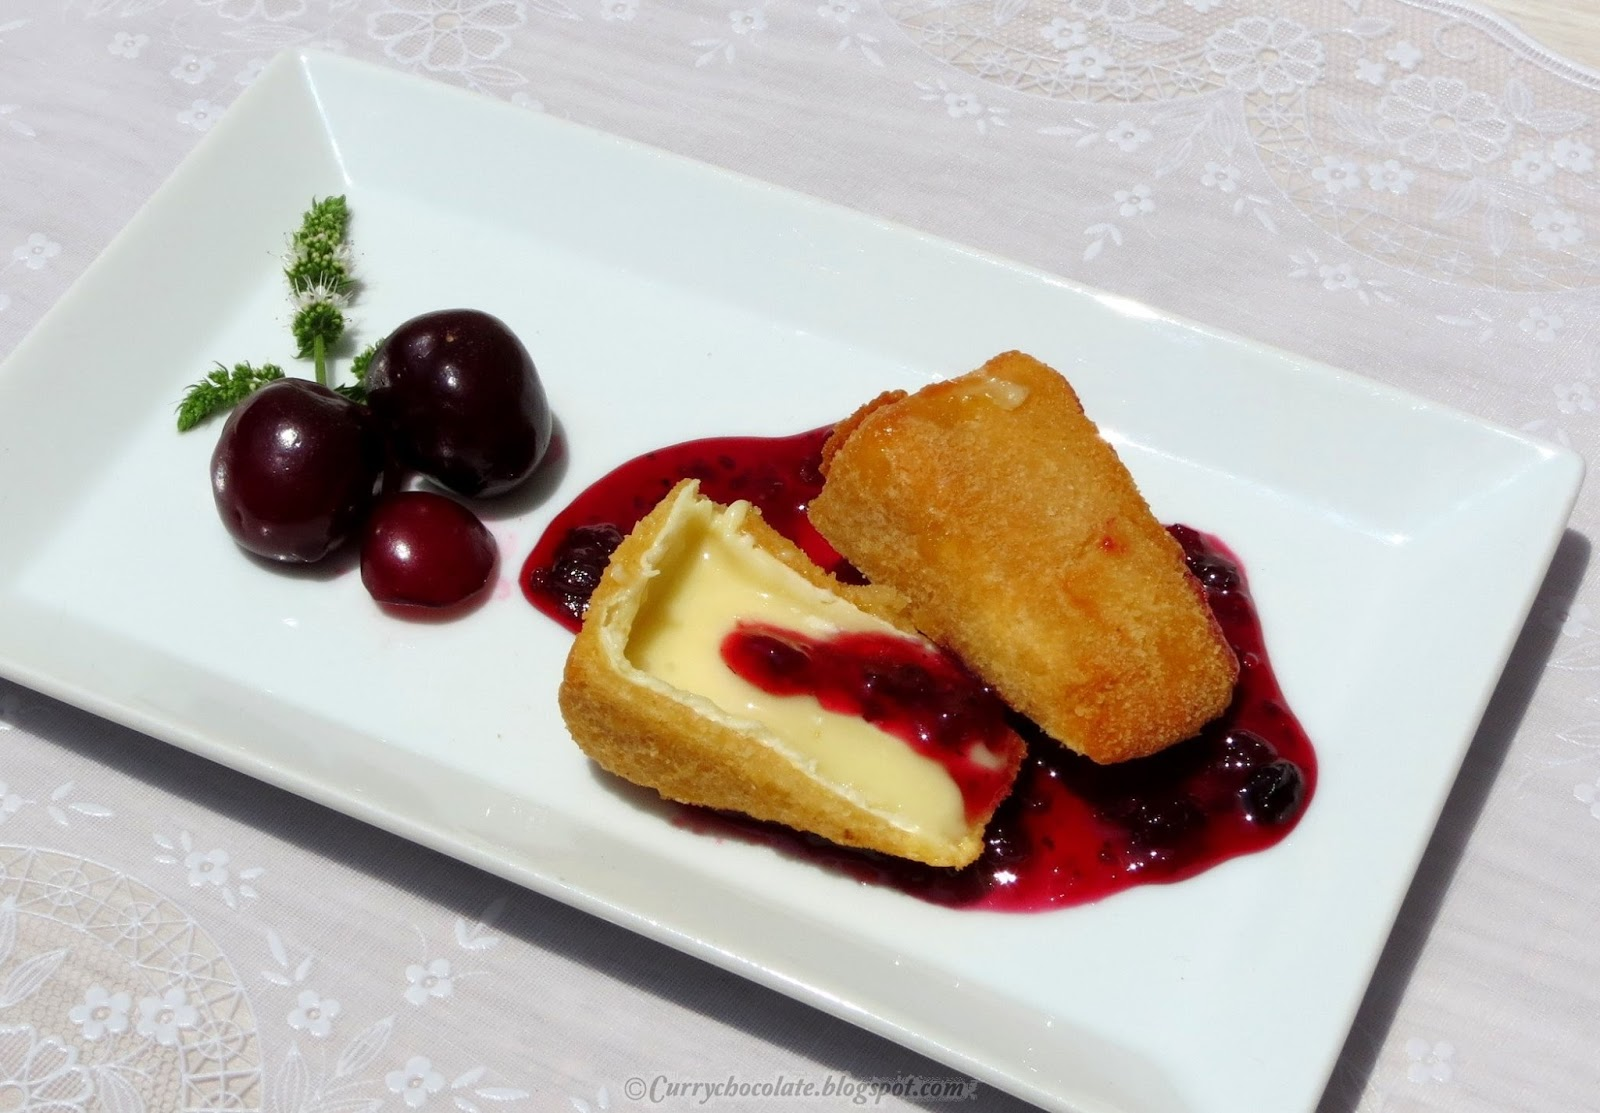 Camembert con mermelada de frambuesa - Camembert with raspberry jam